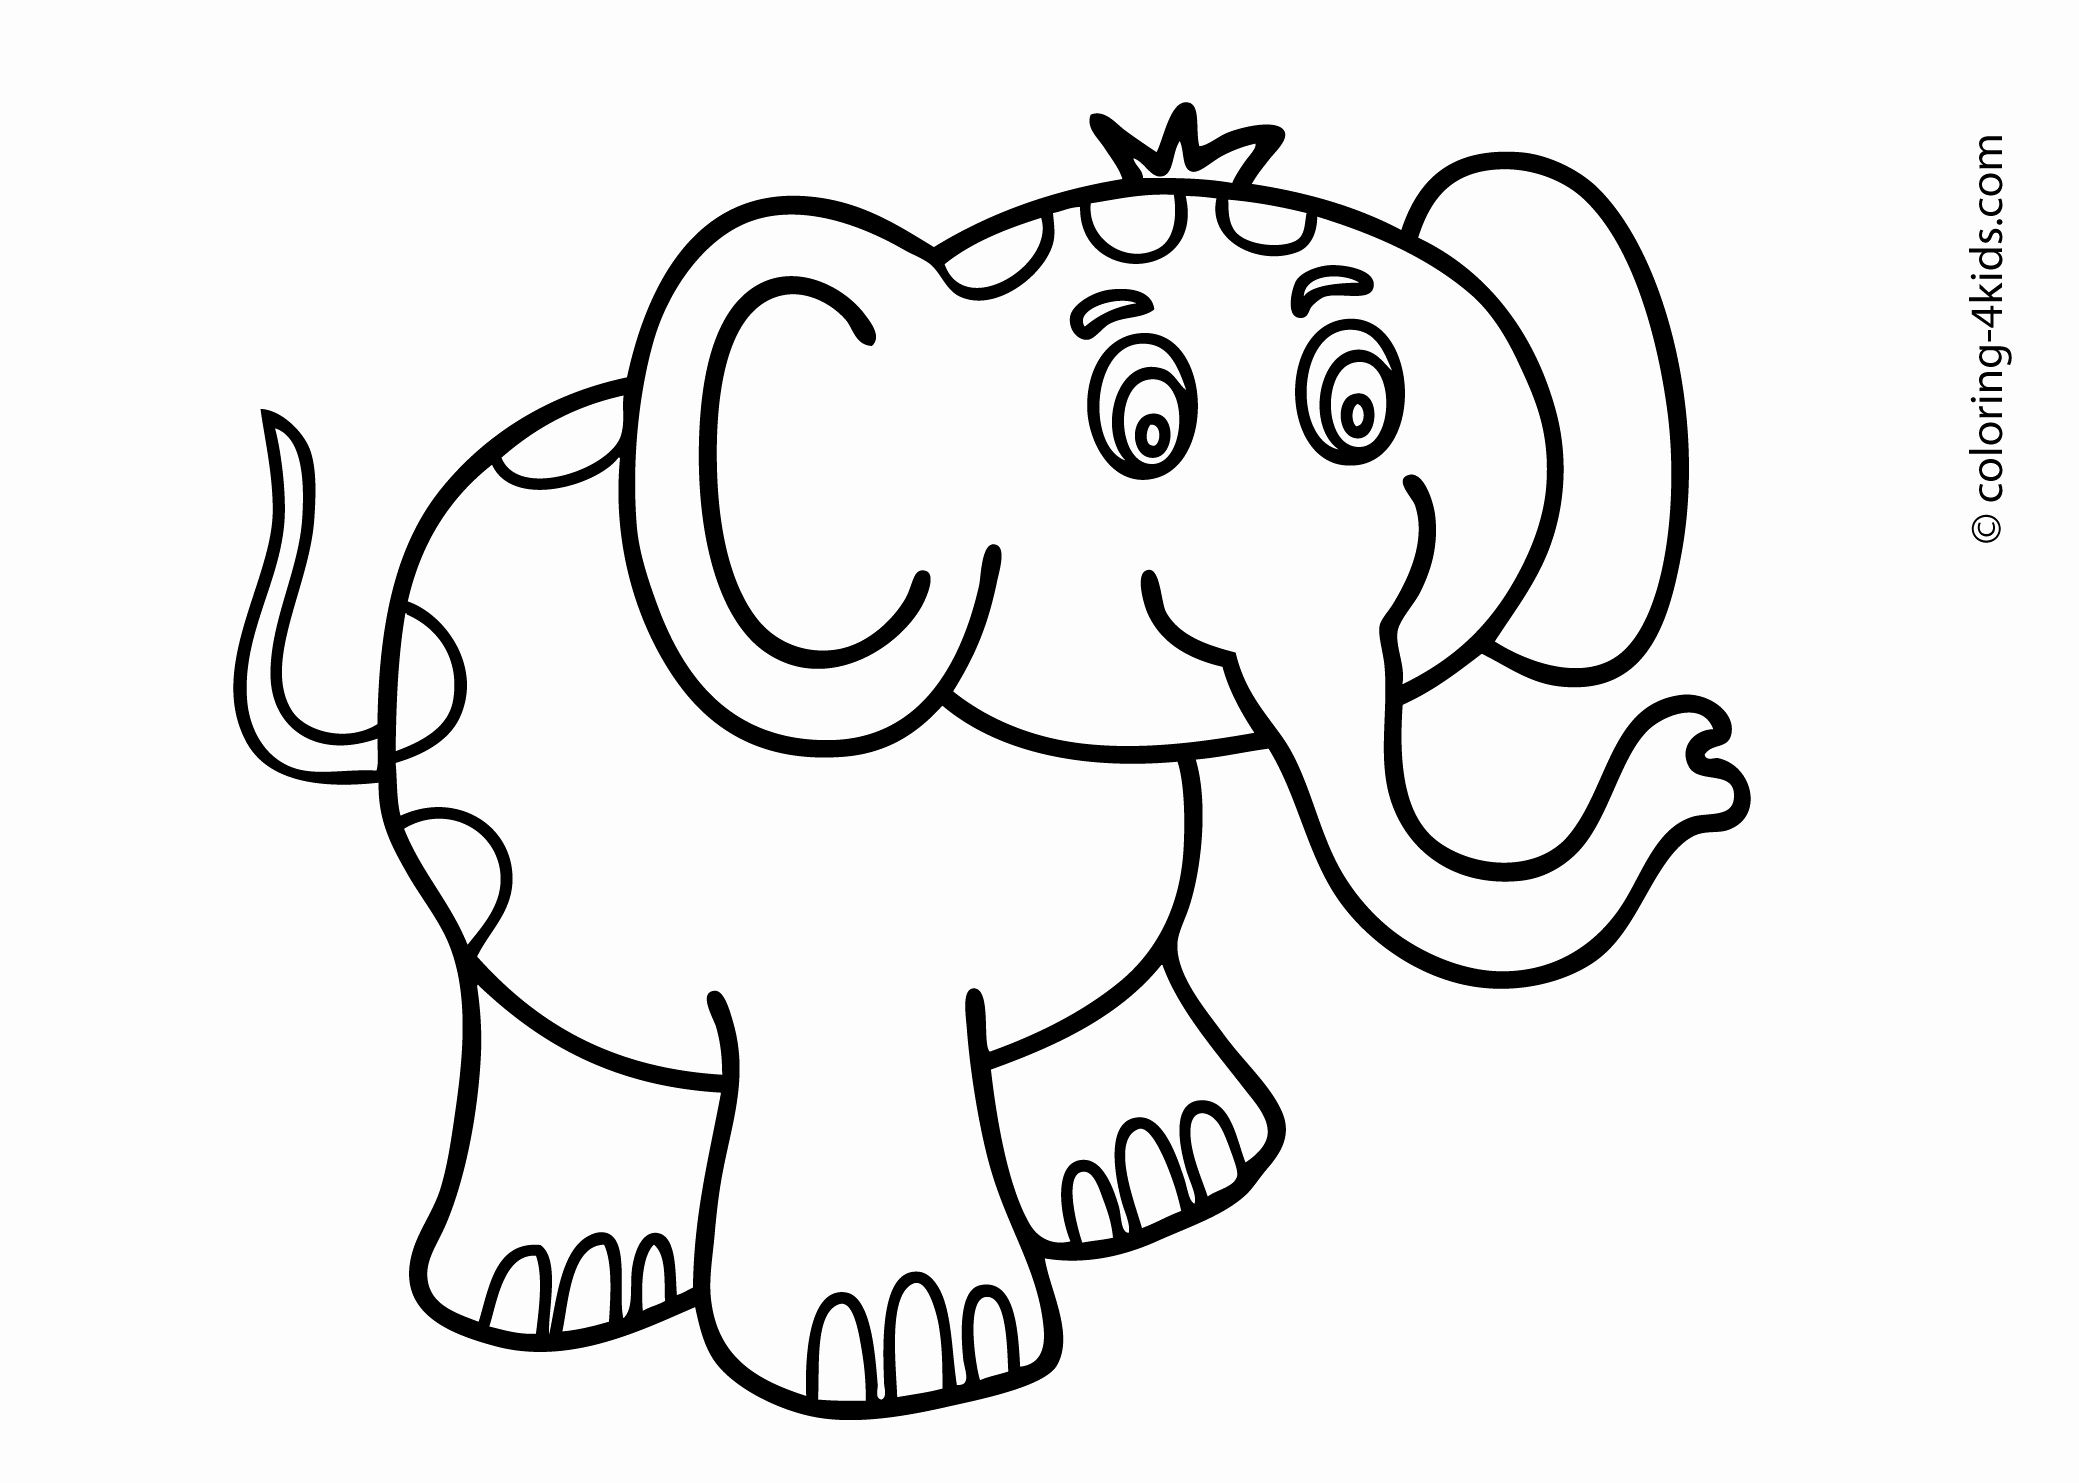 Drawing Book For Children Free Download Beautiful Collection Coloring Pages For 10 12 Year O Elephant Coloring Page Animal Coloring Pages Animal Coloring Books